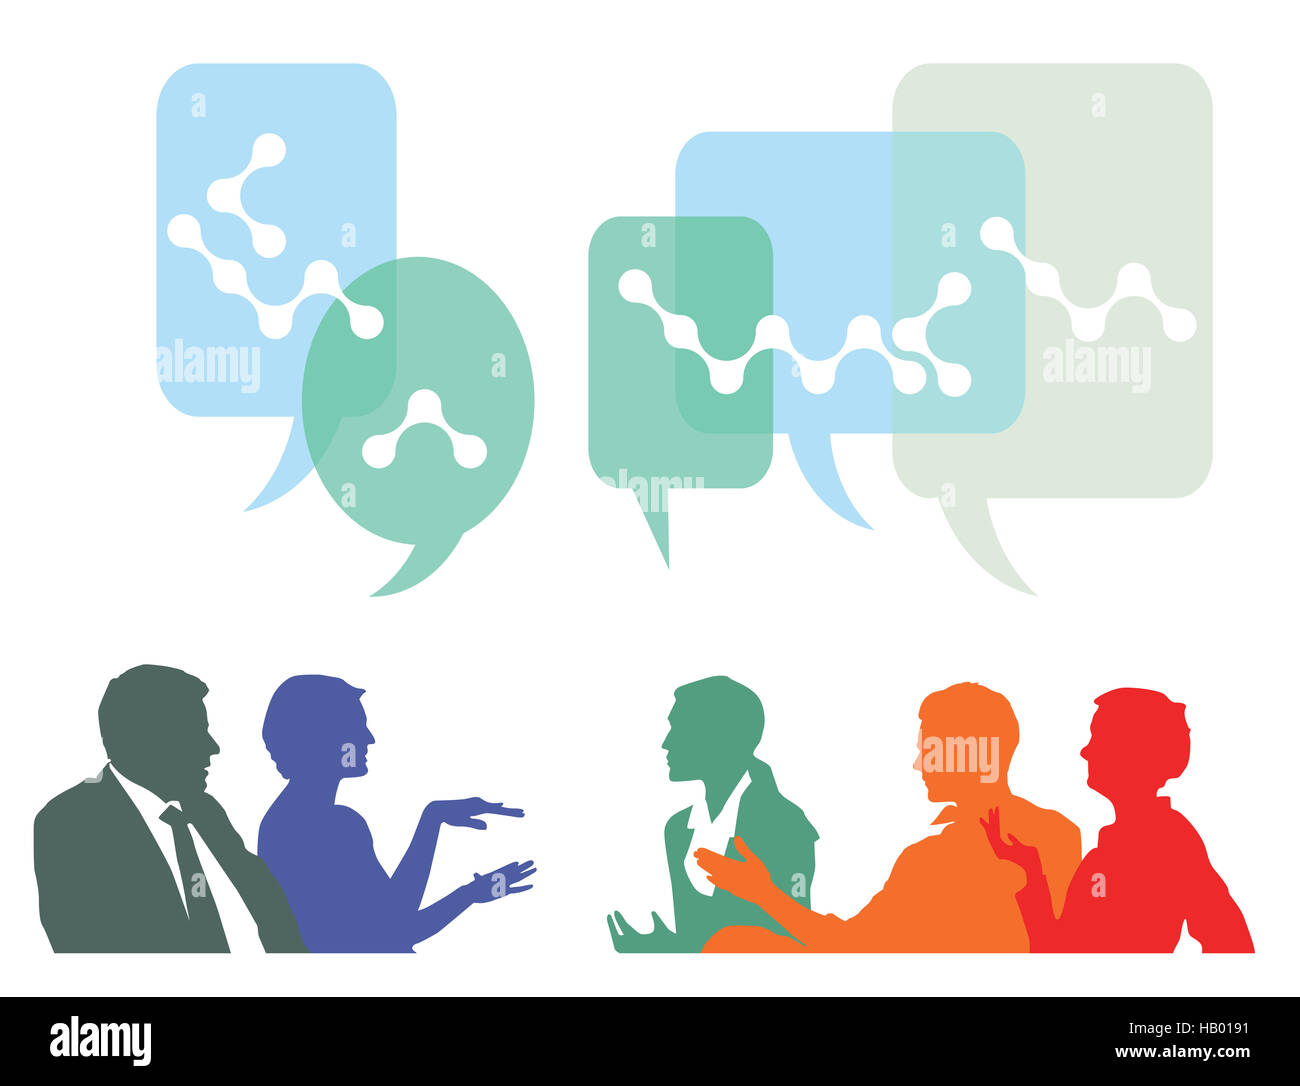 People discuss and exchange ideas - Stock Image